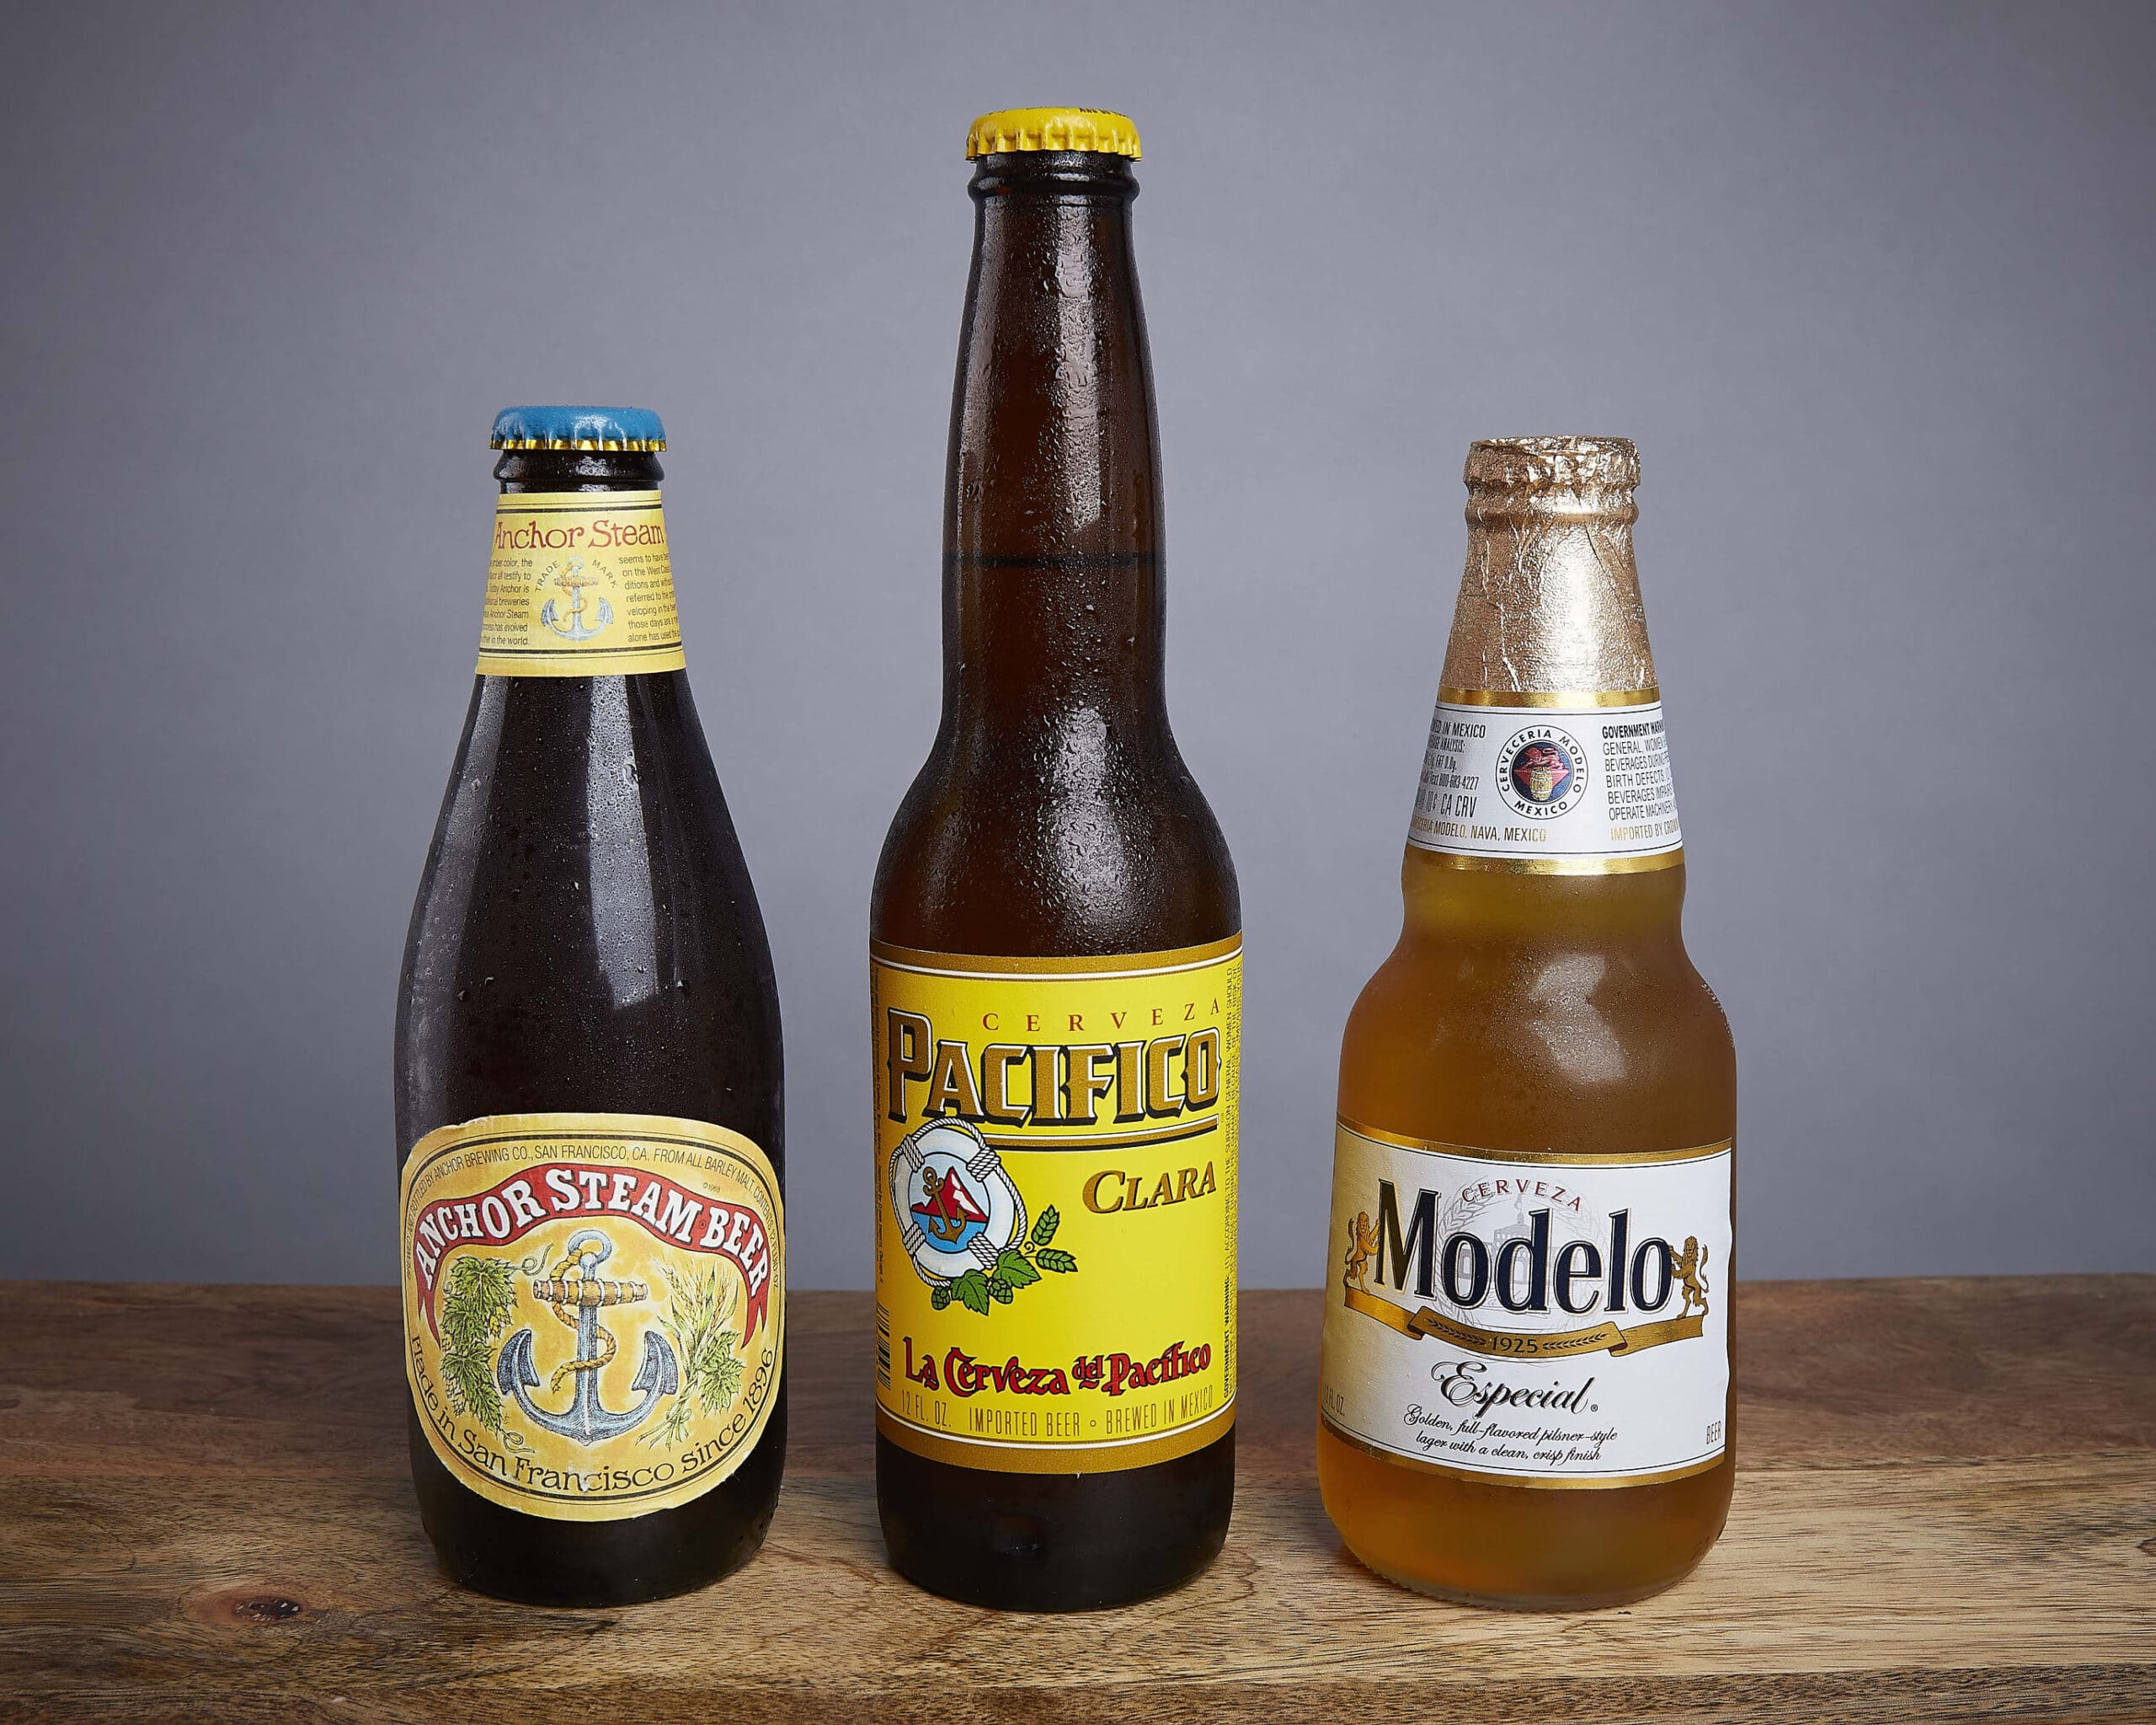 Image of three bottled beers